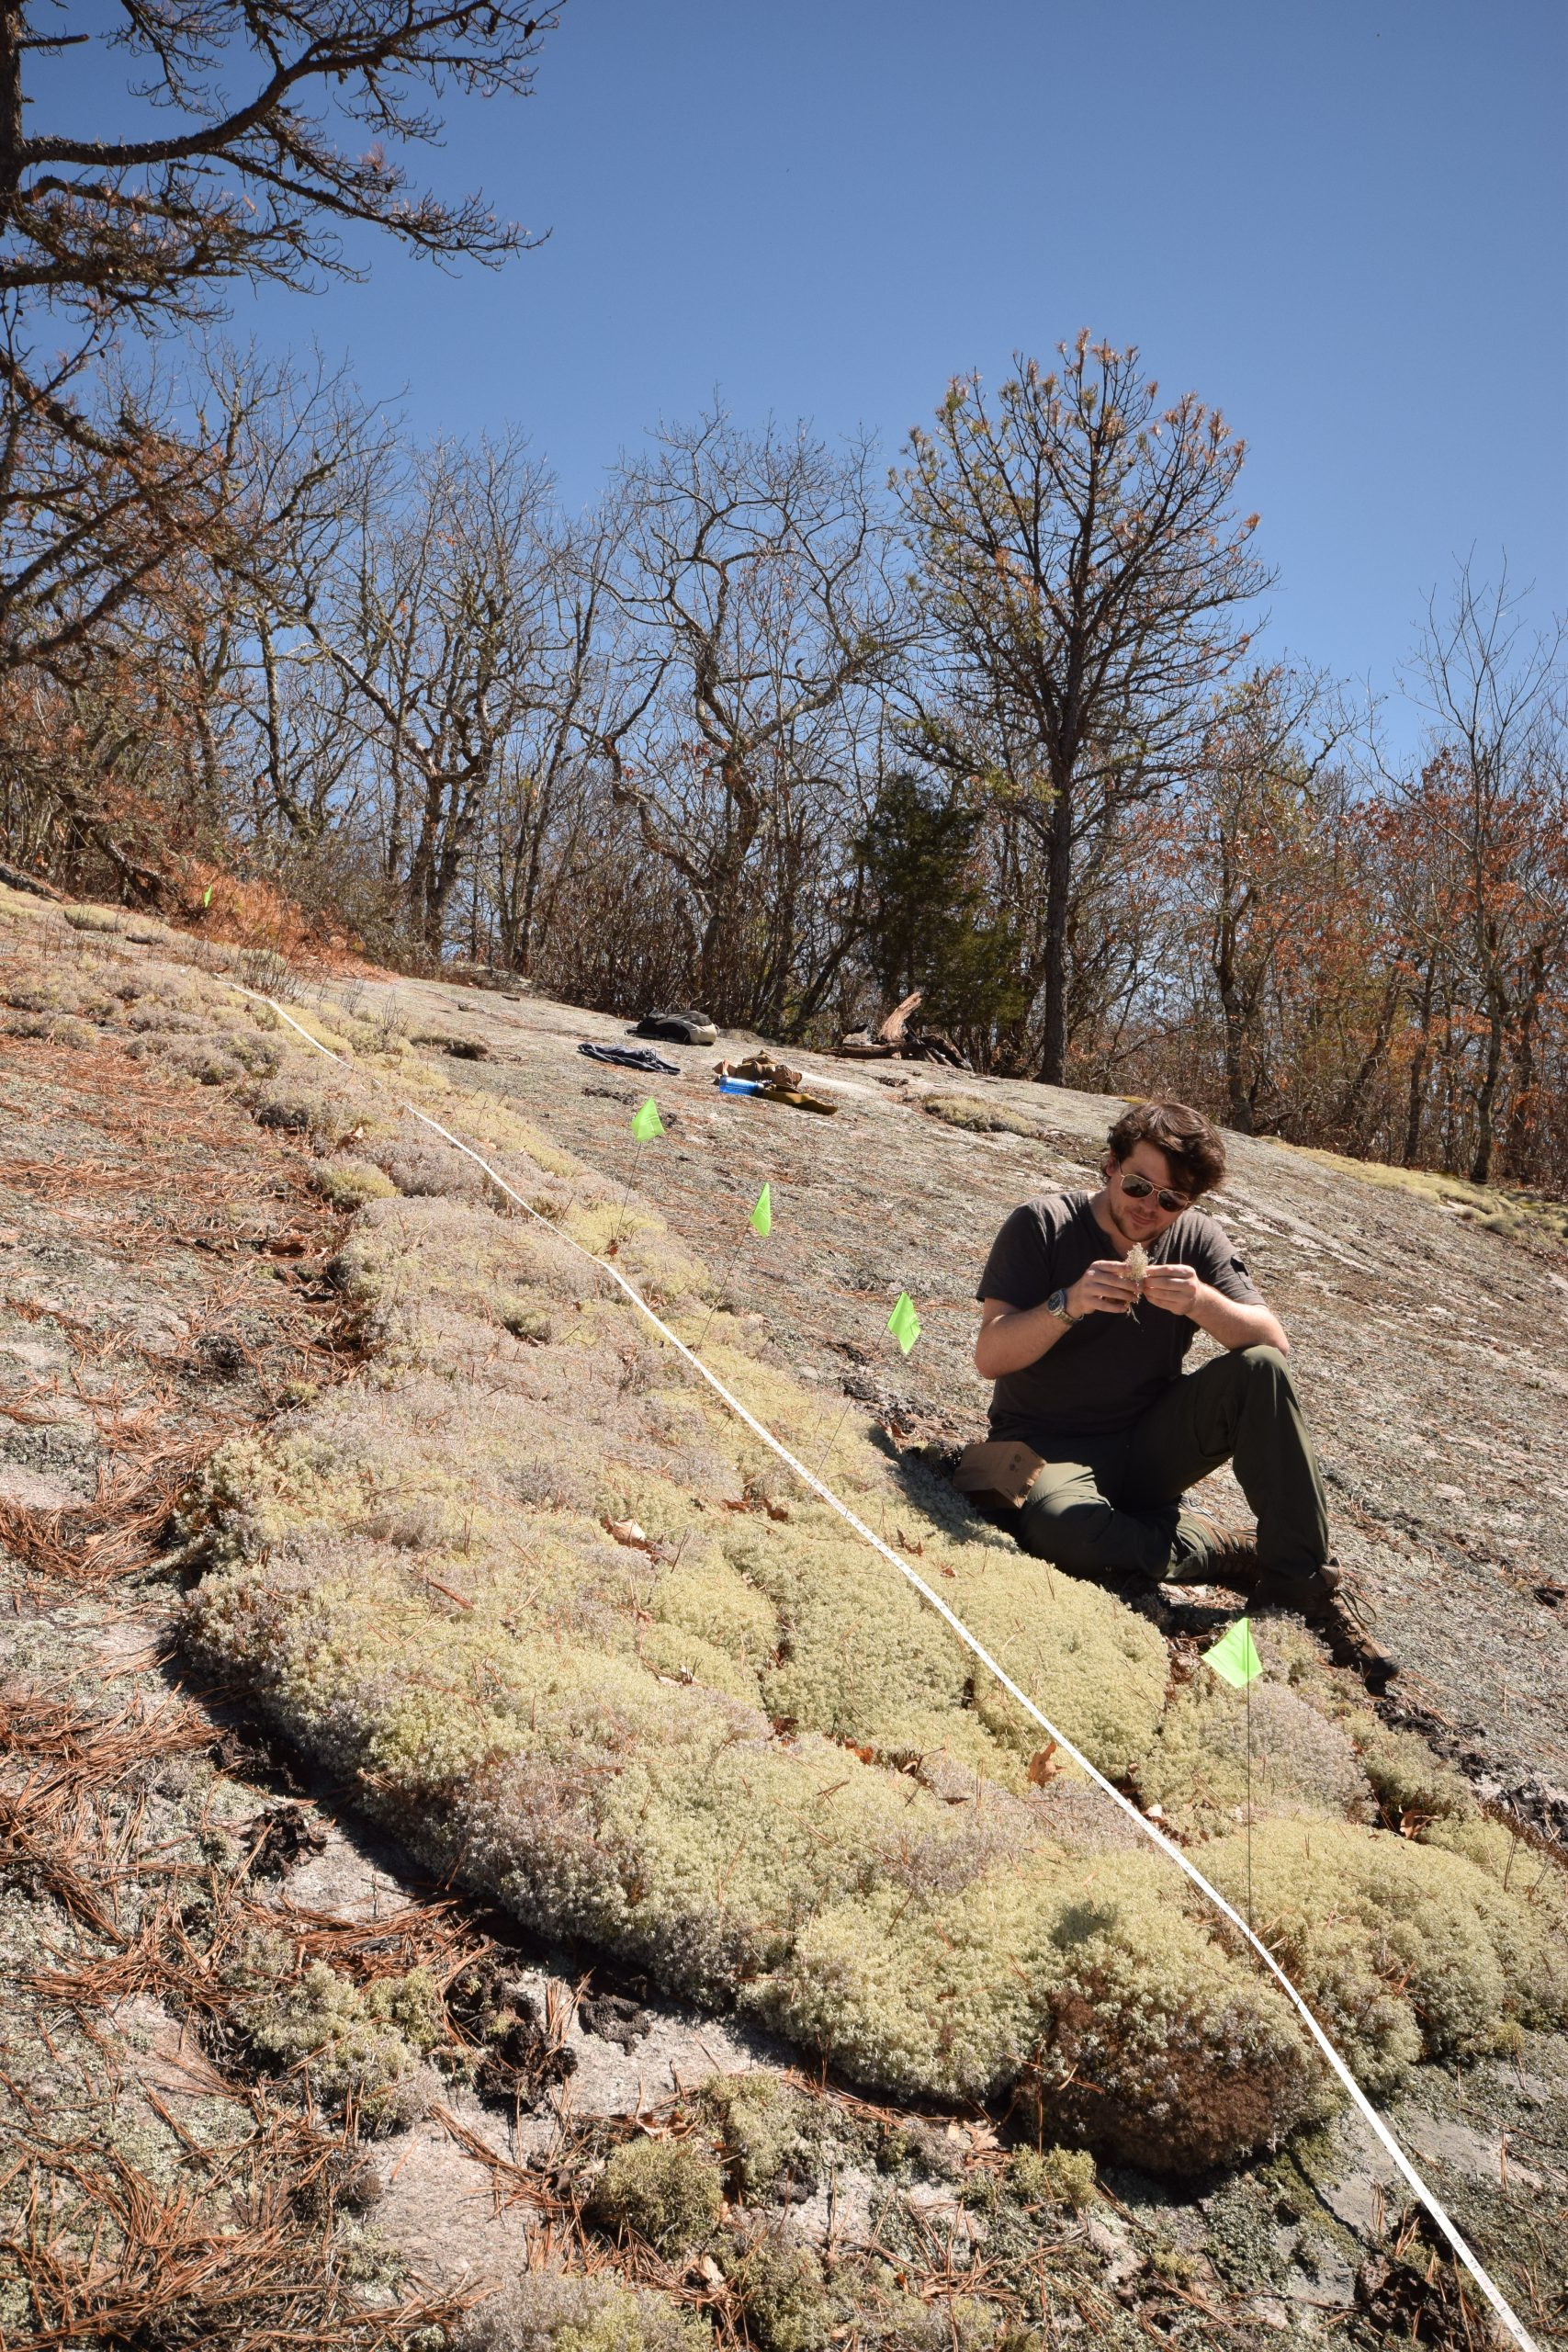 NYBG-CUNY graduate student Jordan Hoffman studying Cladonia (reindeer lichen) on Whiterock Mountain, Nantahala National Forest, North Carolina.